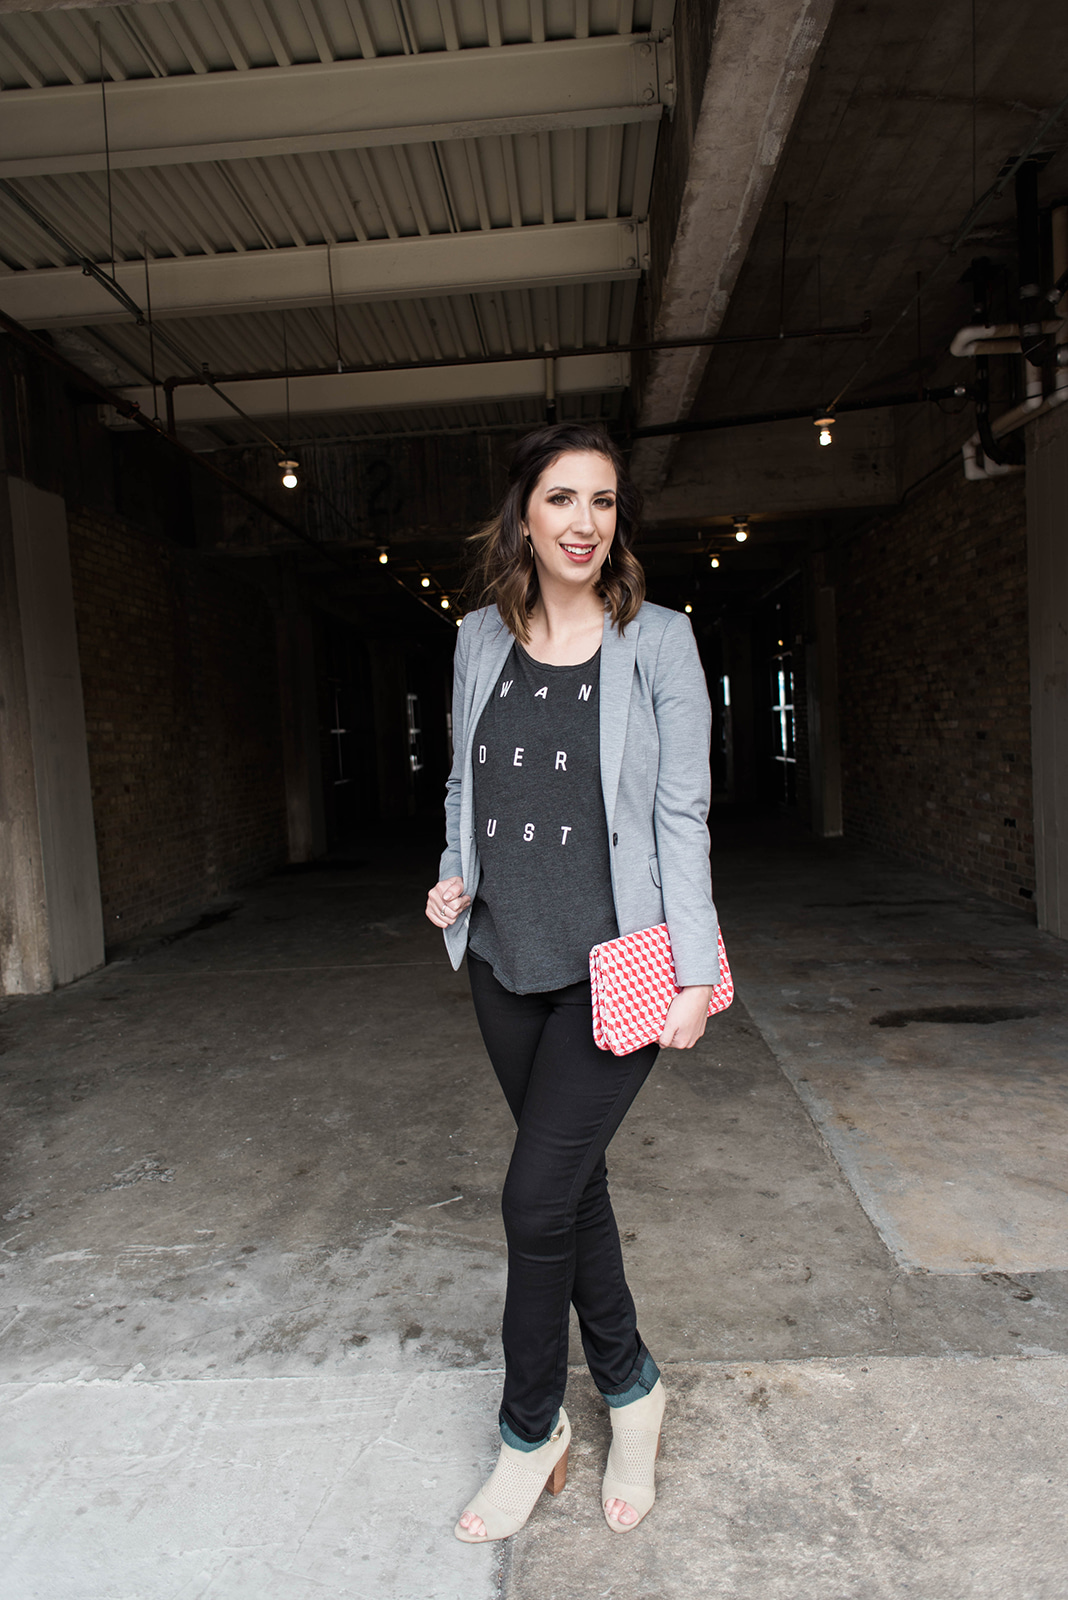 Graphic Tee & Blazer casual look - perfect idea for how to style a graphic tee // Hey There, Chelsie